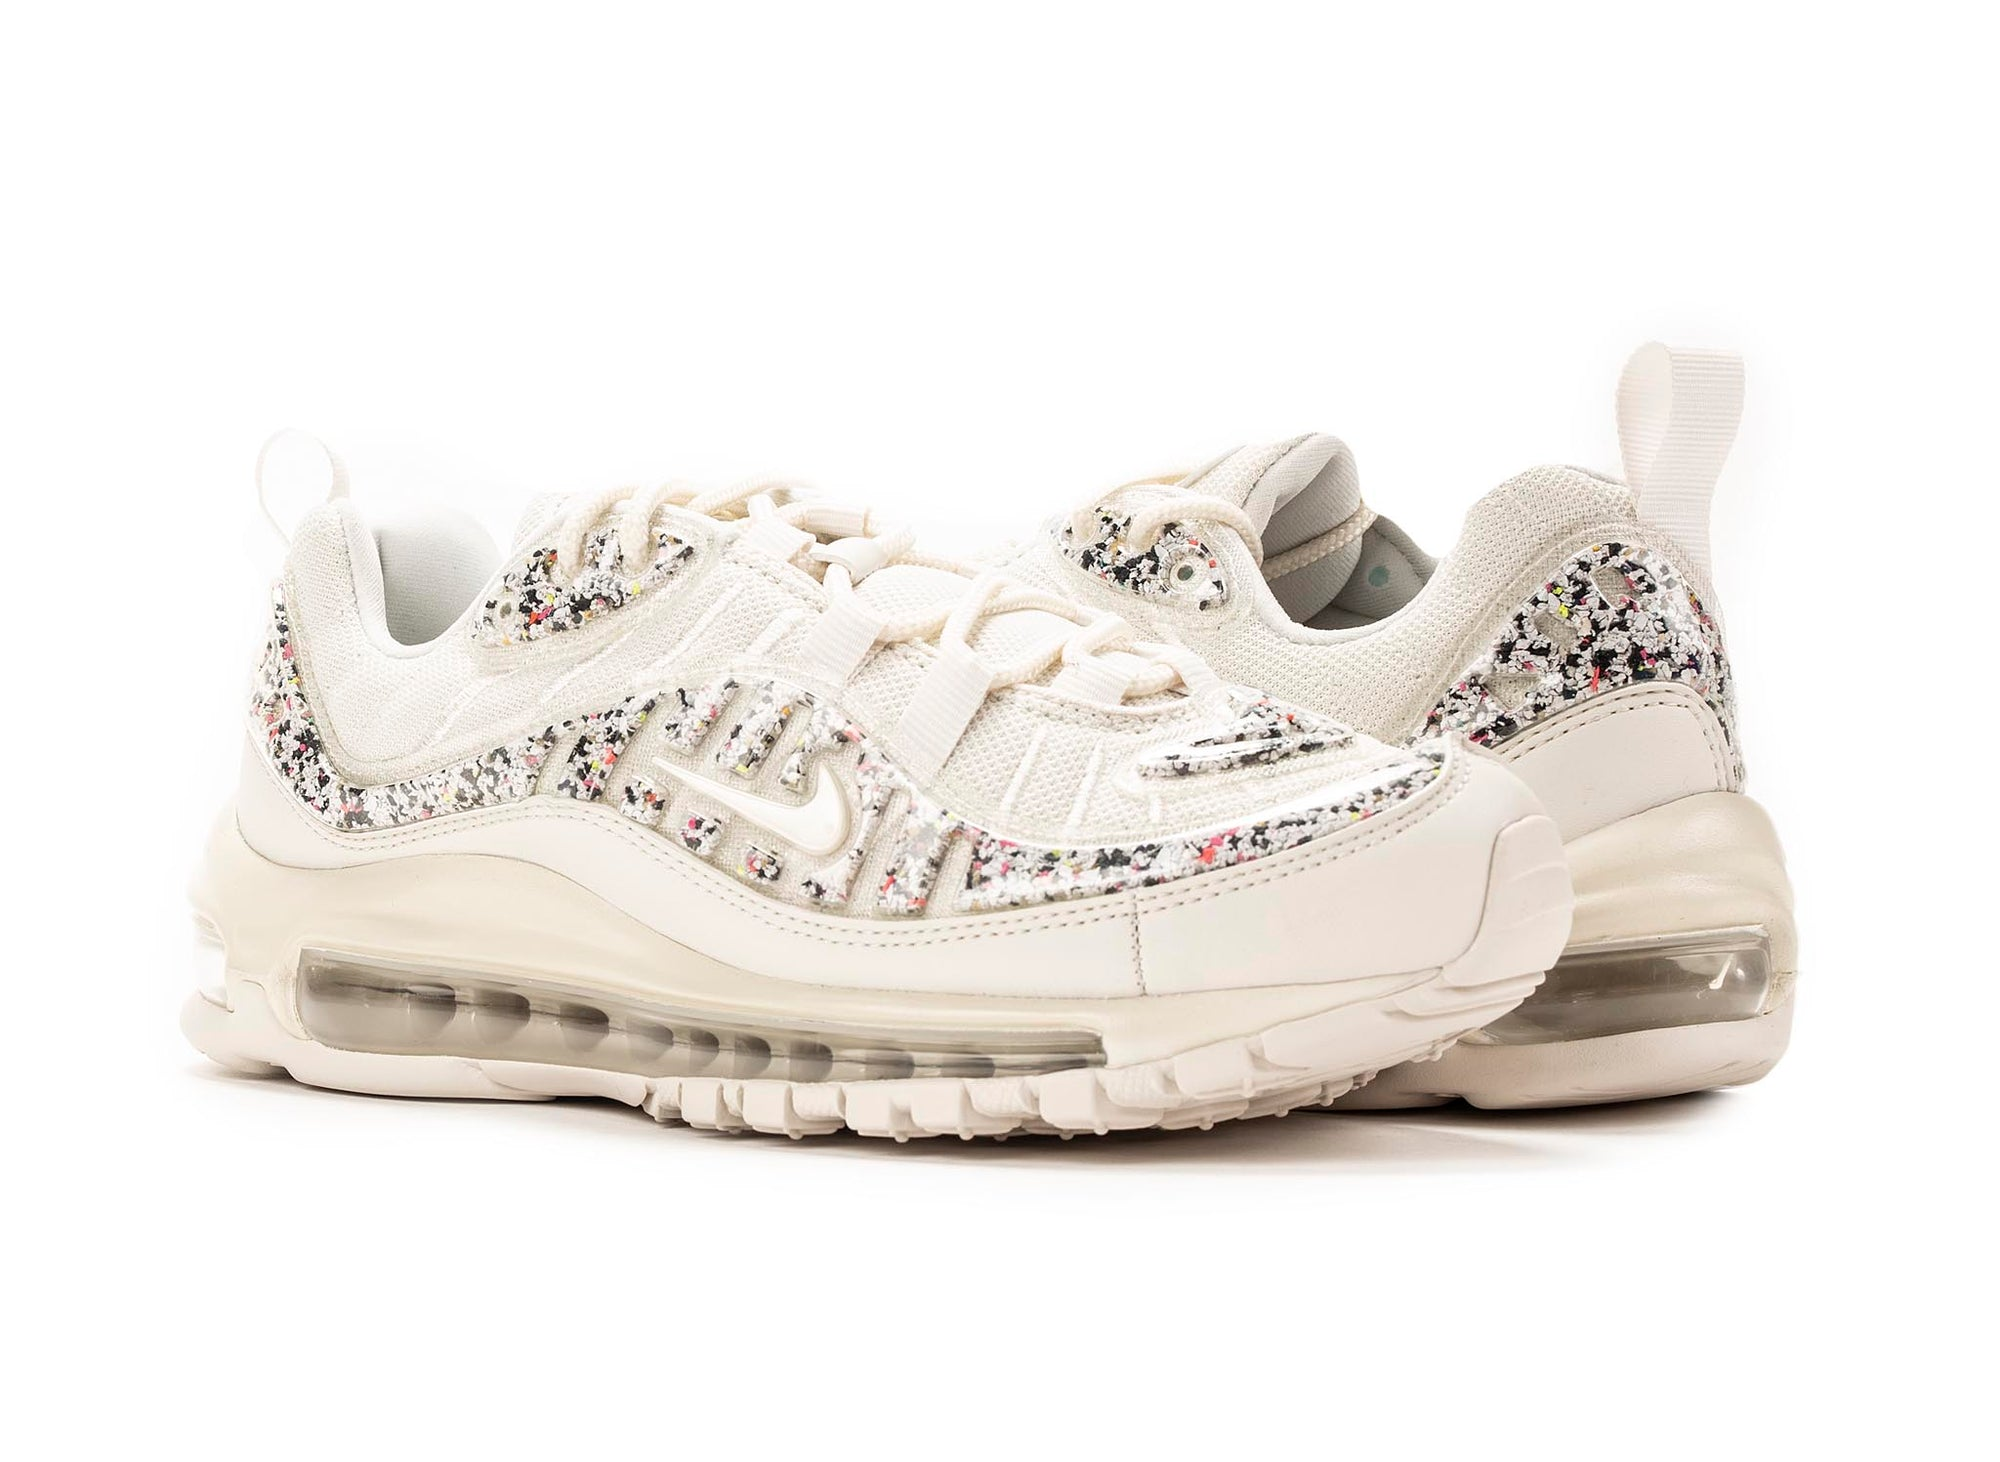 hot sale online d1954 07348 Nike Air Max 98 LX Women's 'Phantom'